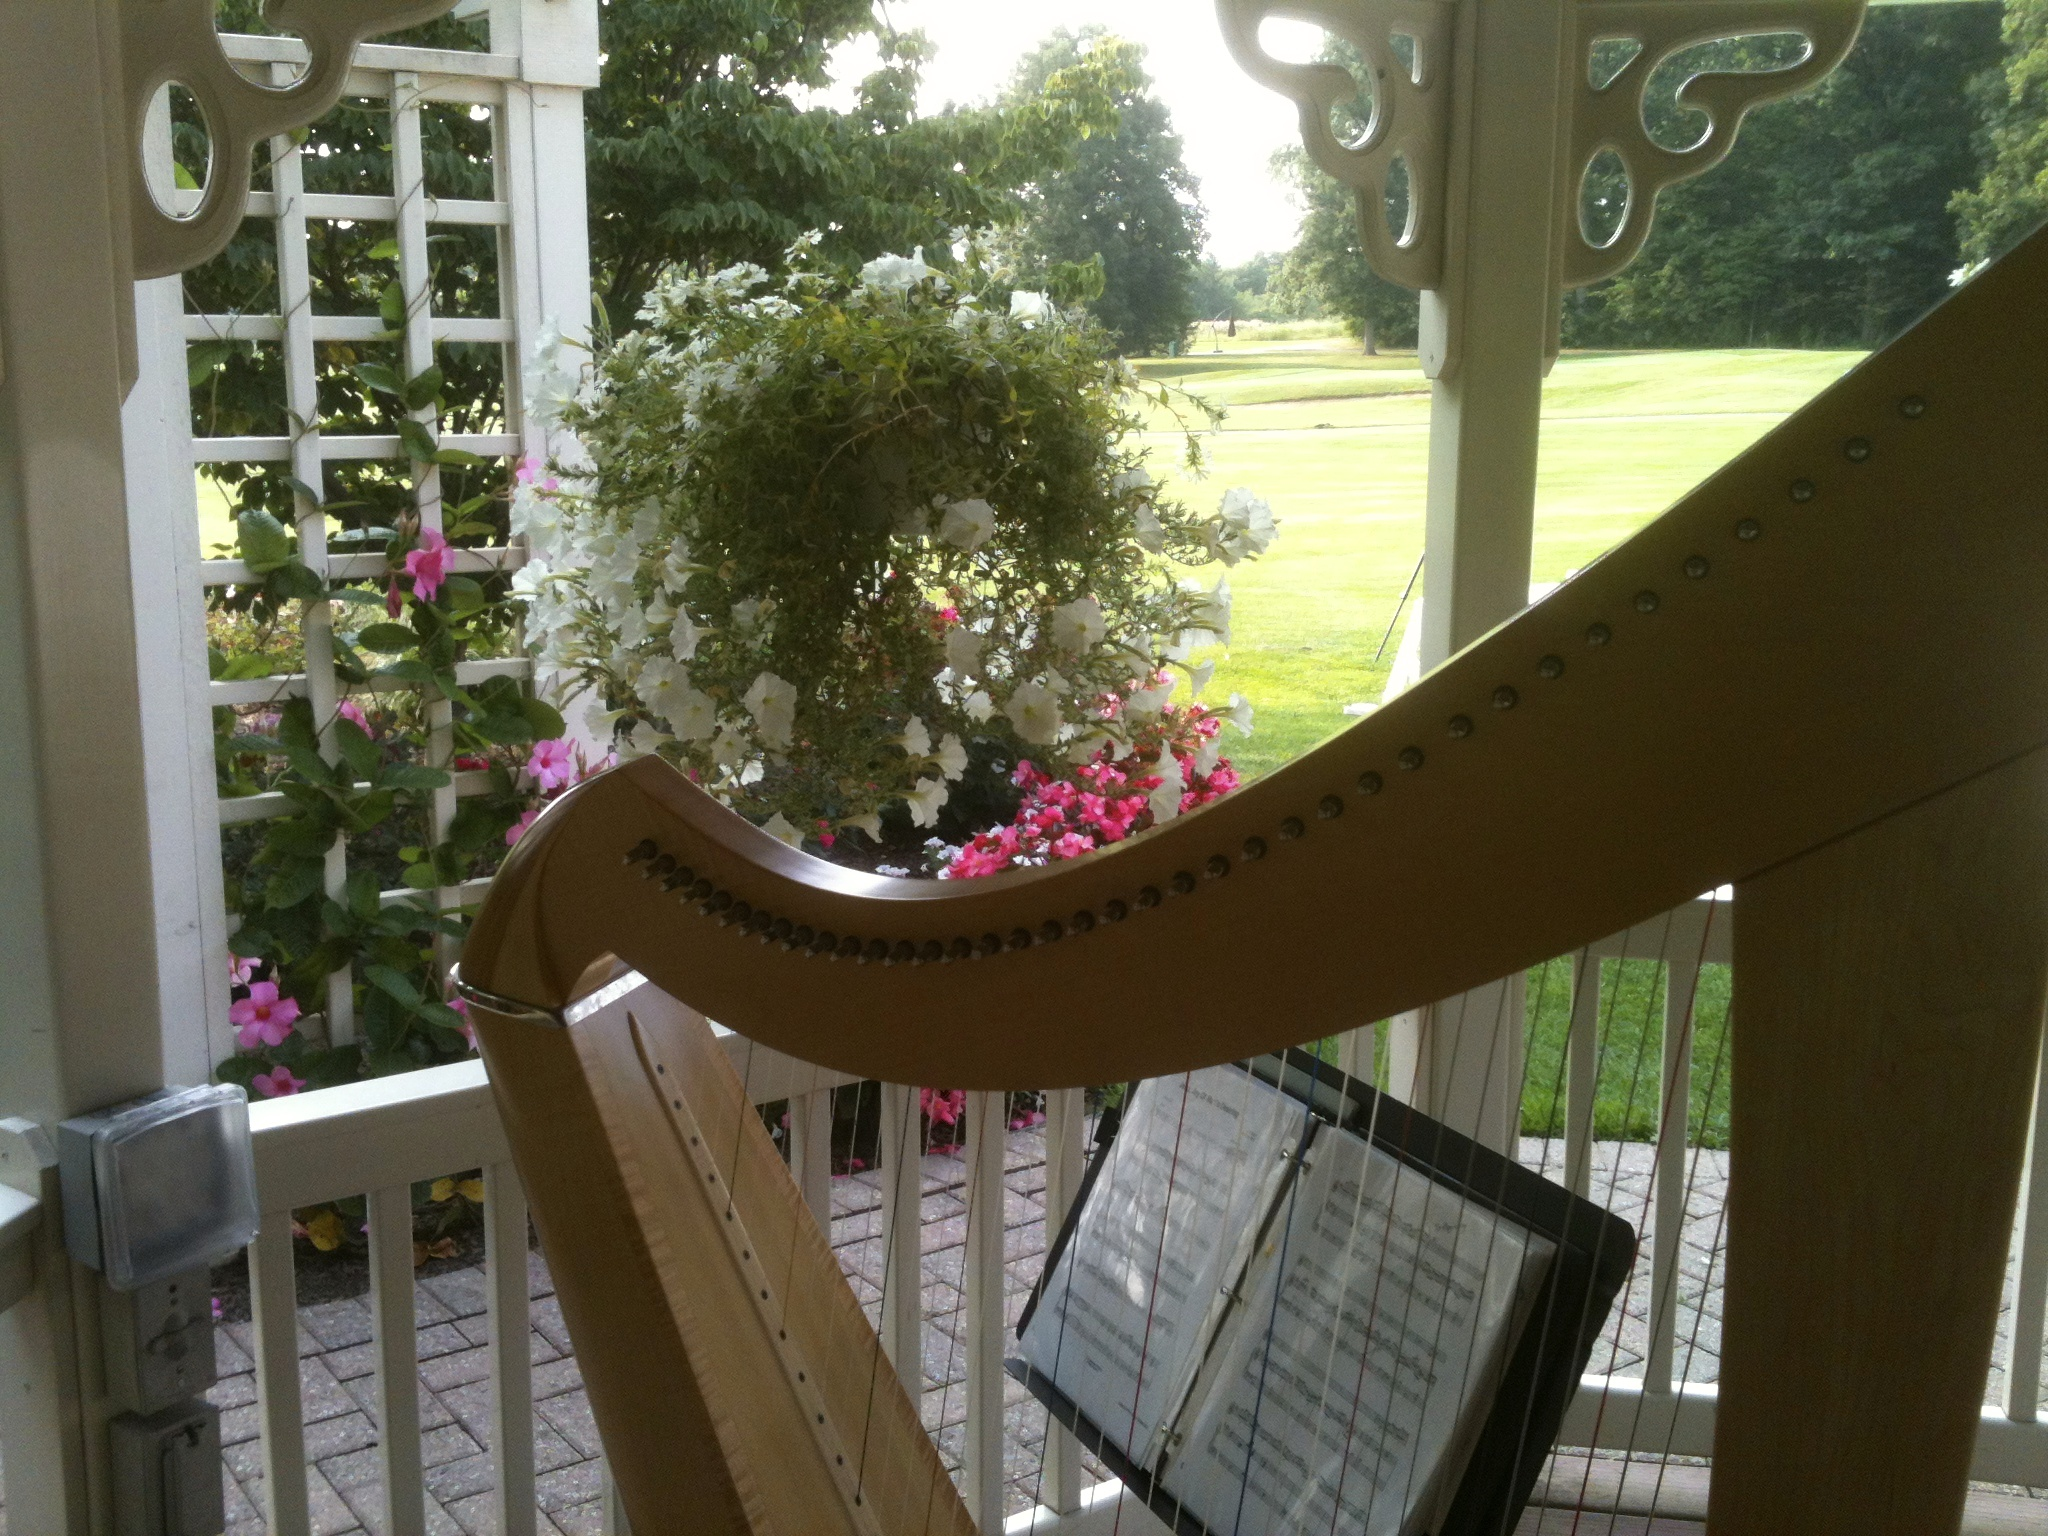 The flowers are so fragrant, and so close to the harp. A beautiful aroma accompanies me as I play this wedding processional.